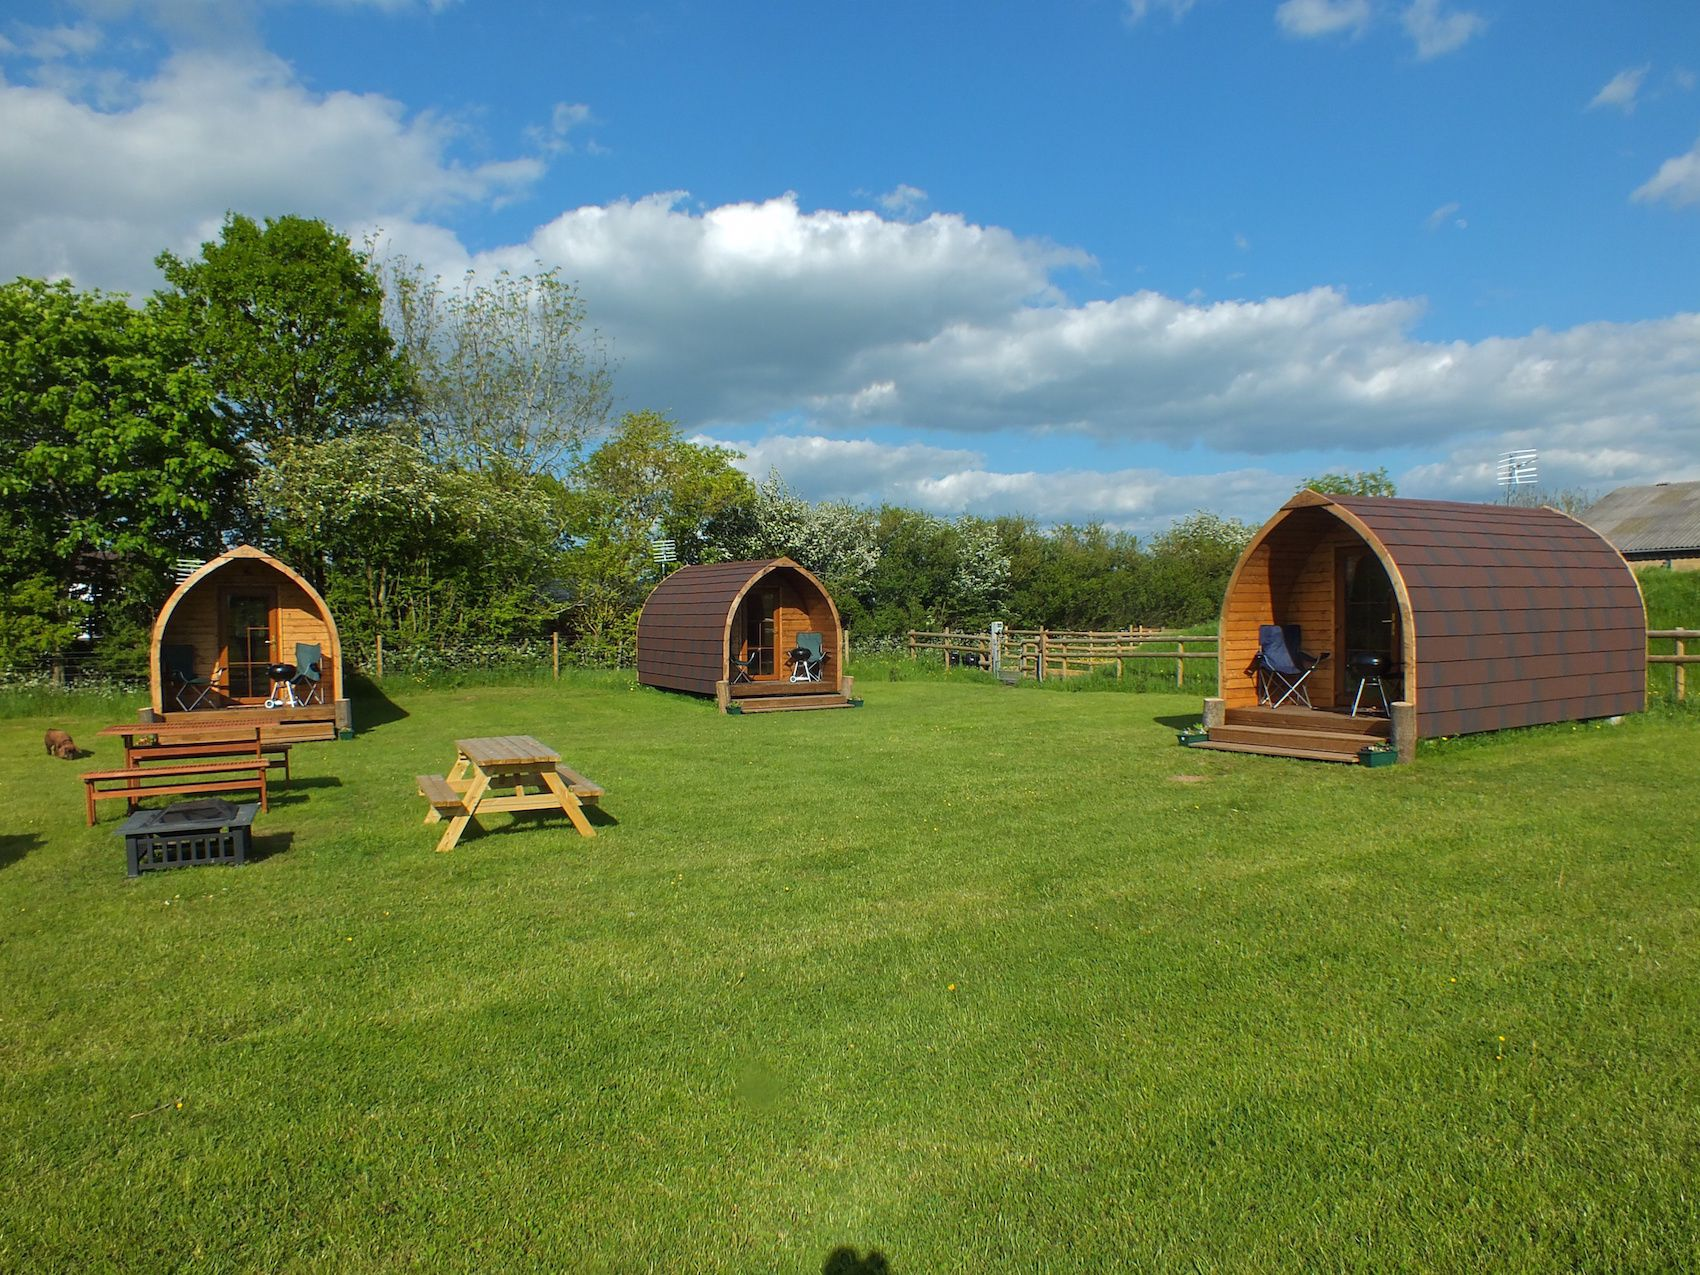 Glamping in Worcestershire: Pod glamping at the foot of the Malvern Hills where dogs, horses and glampers of all ages are welcome.